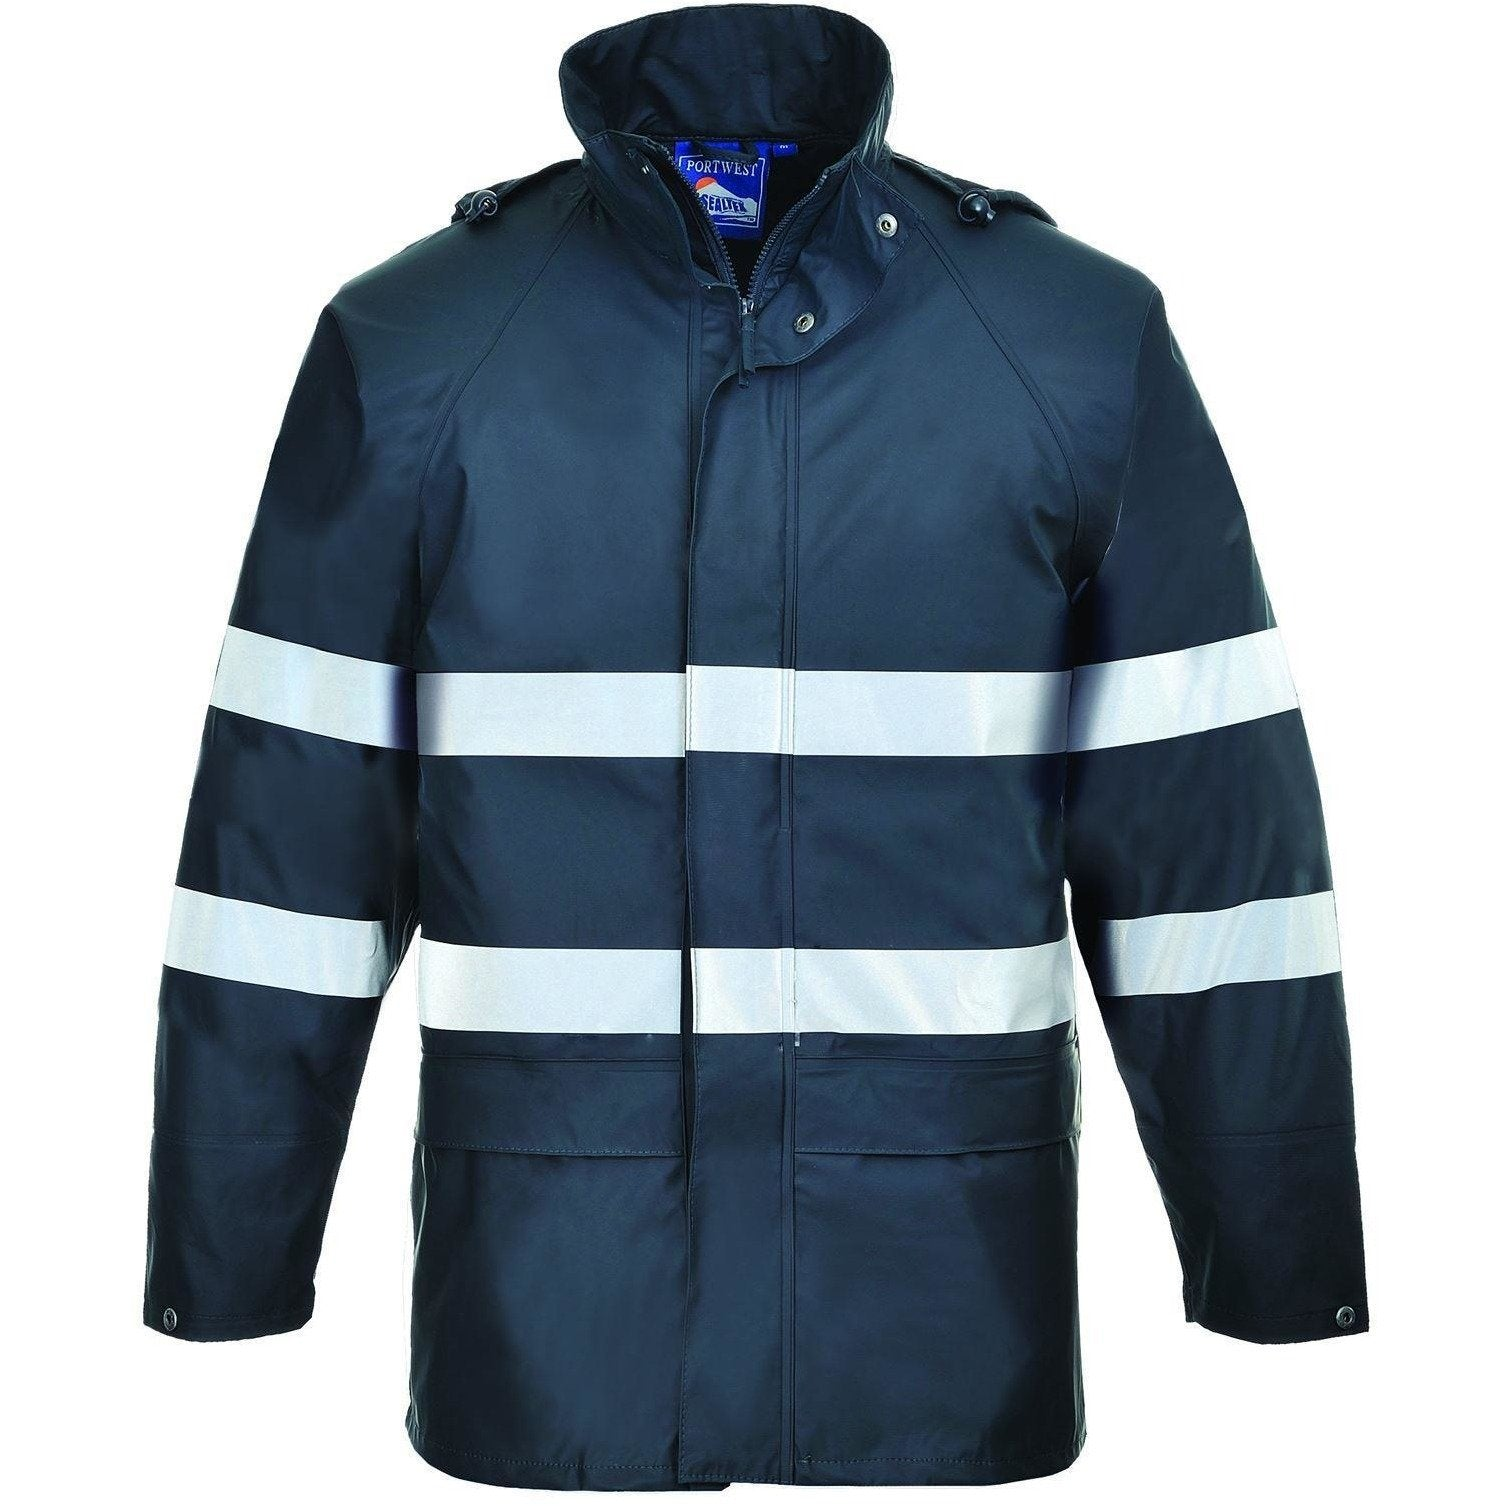 Portwest Iona Sealtex Classic Jacket F450 - reid outdoors